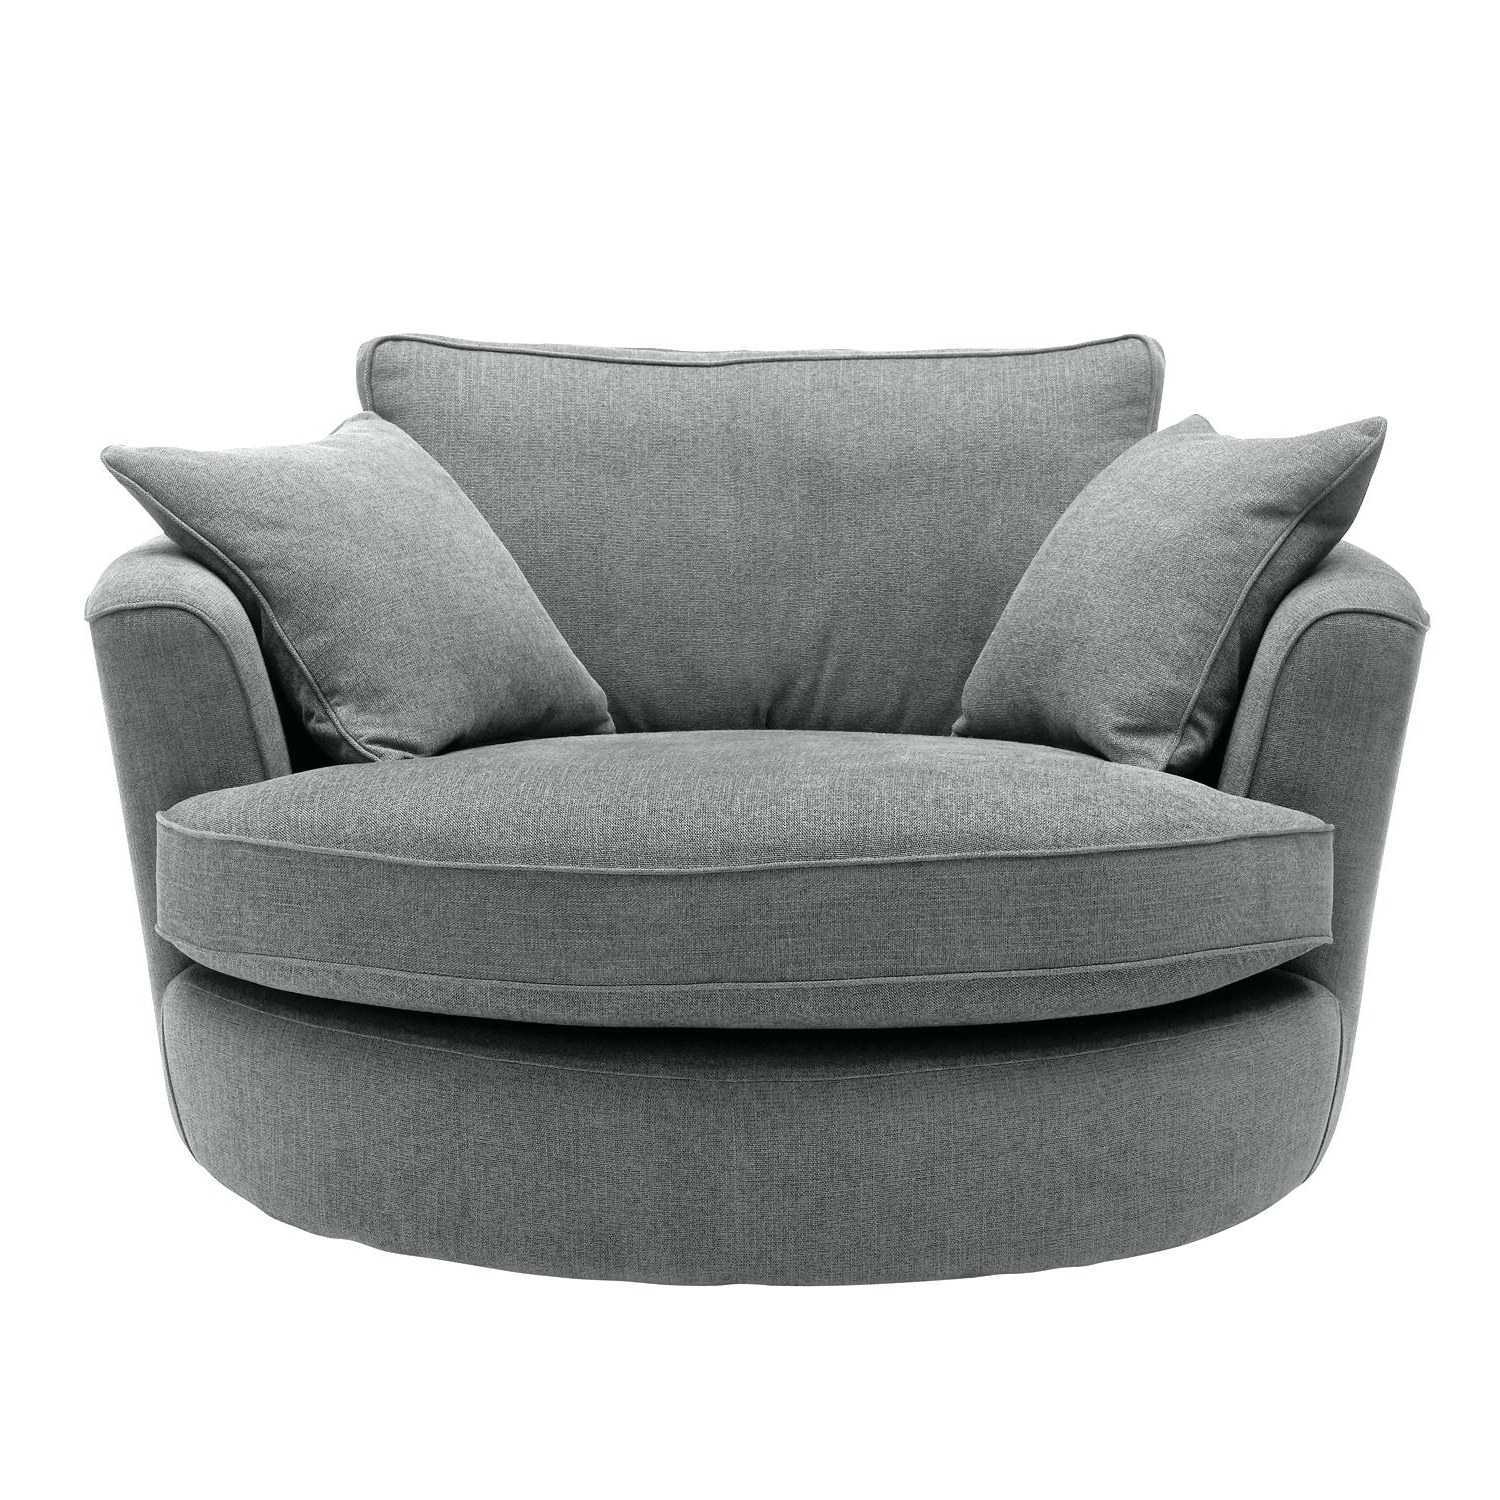 2018 Circle Sofas For Circle Sofa Chair Furniture Sectional Sofas King Copley (View 15 of 20)